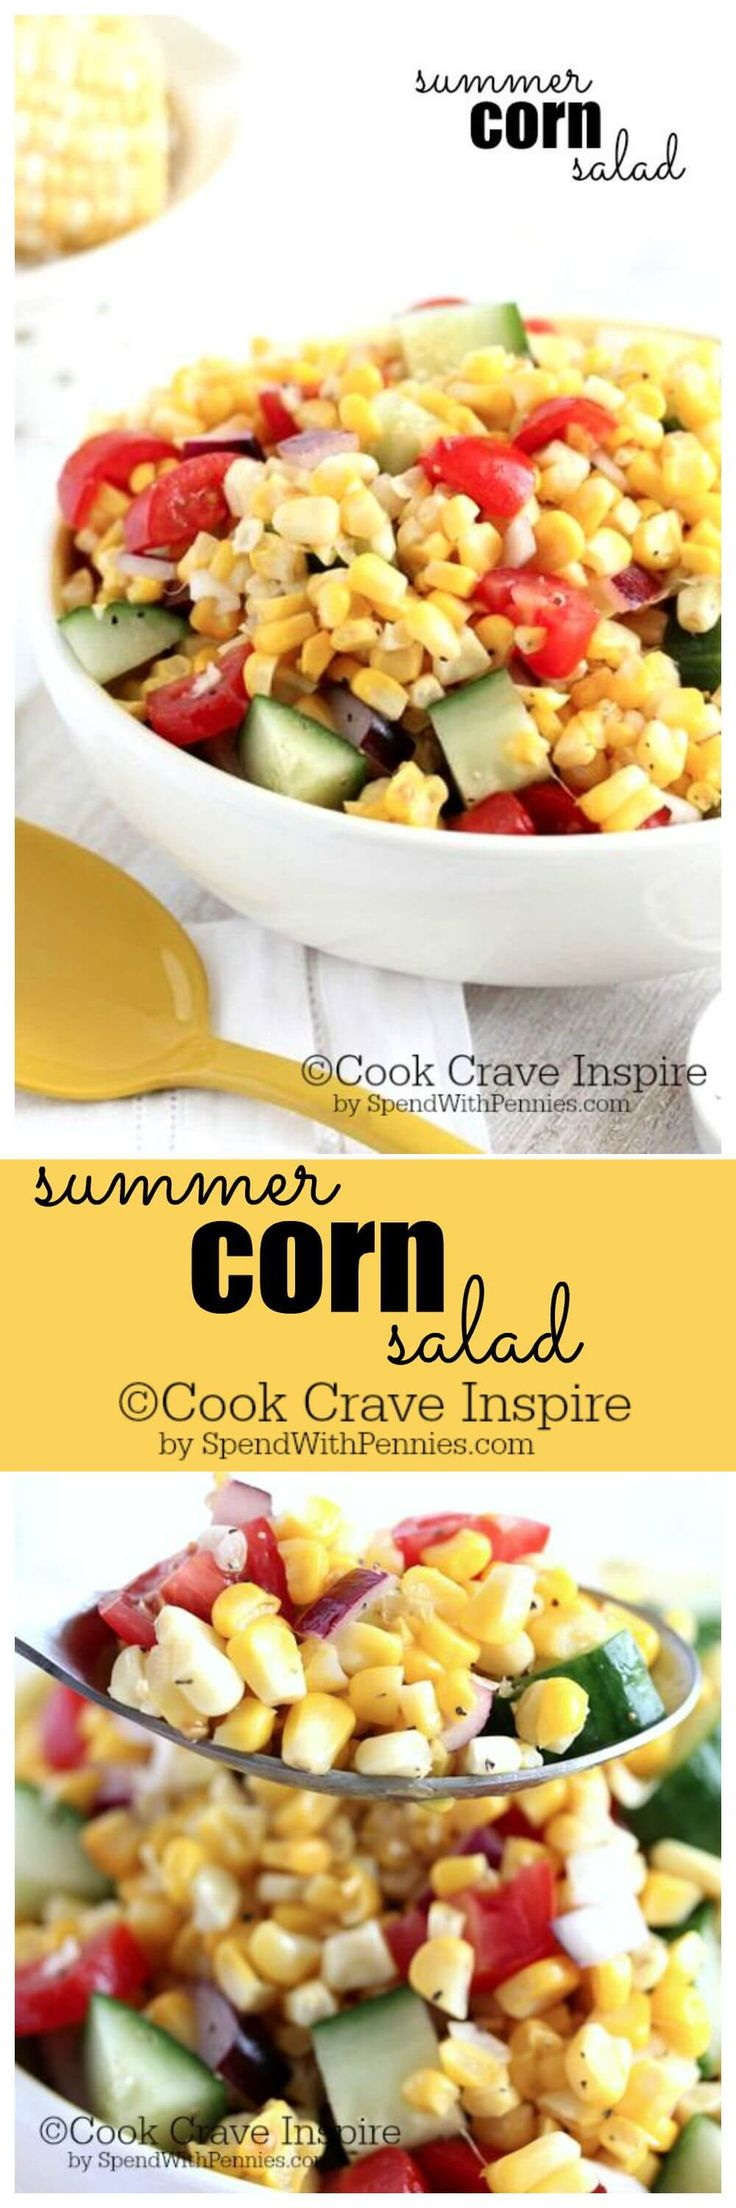 Summer Corn Salad!  This recipe is simply delicious and quick!  The perfect way to enjoy fresh summer corn and tomatoes.